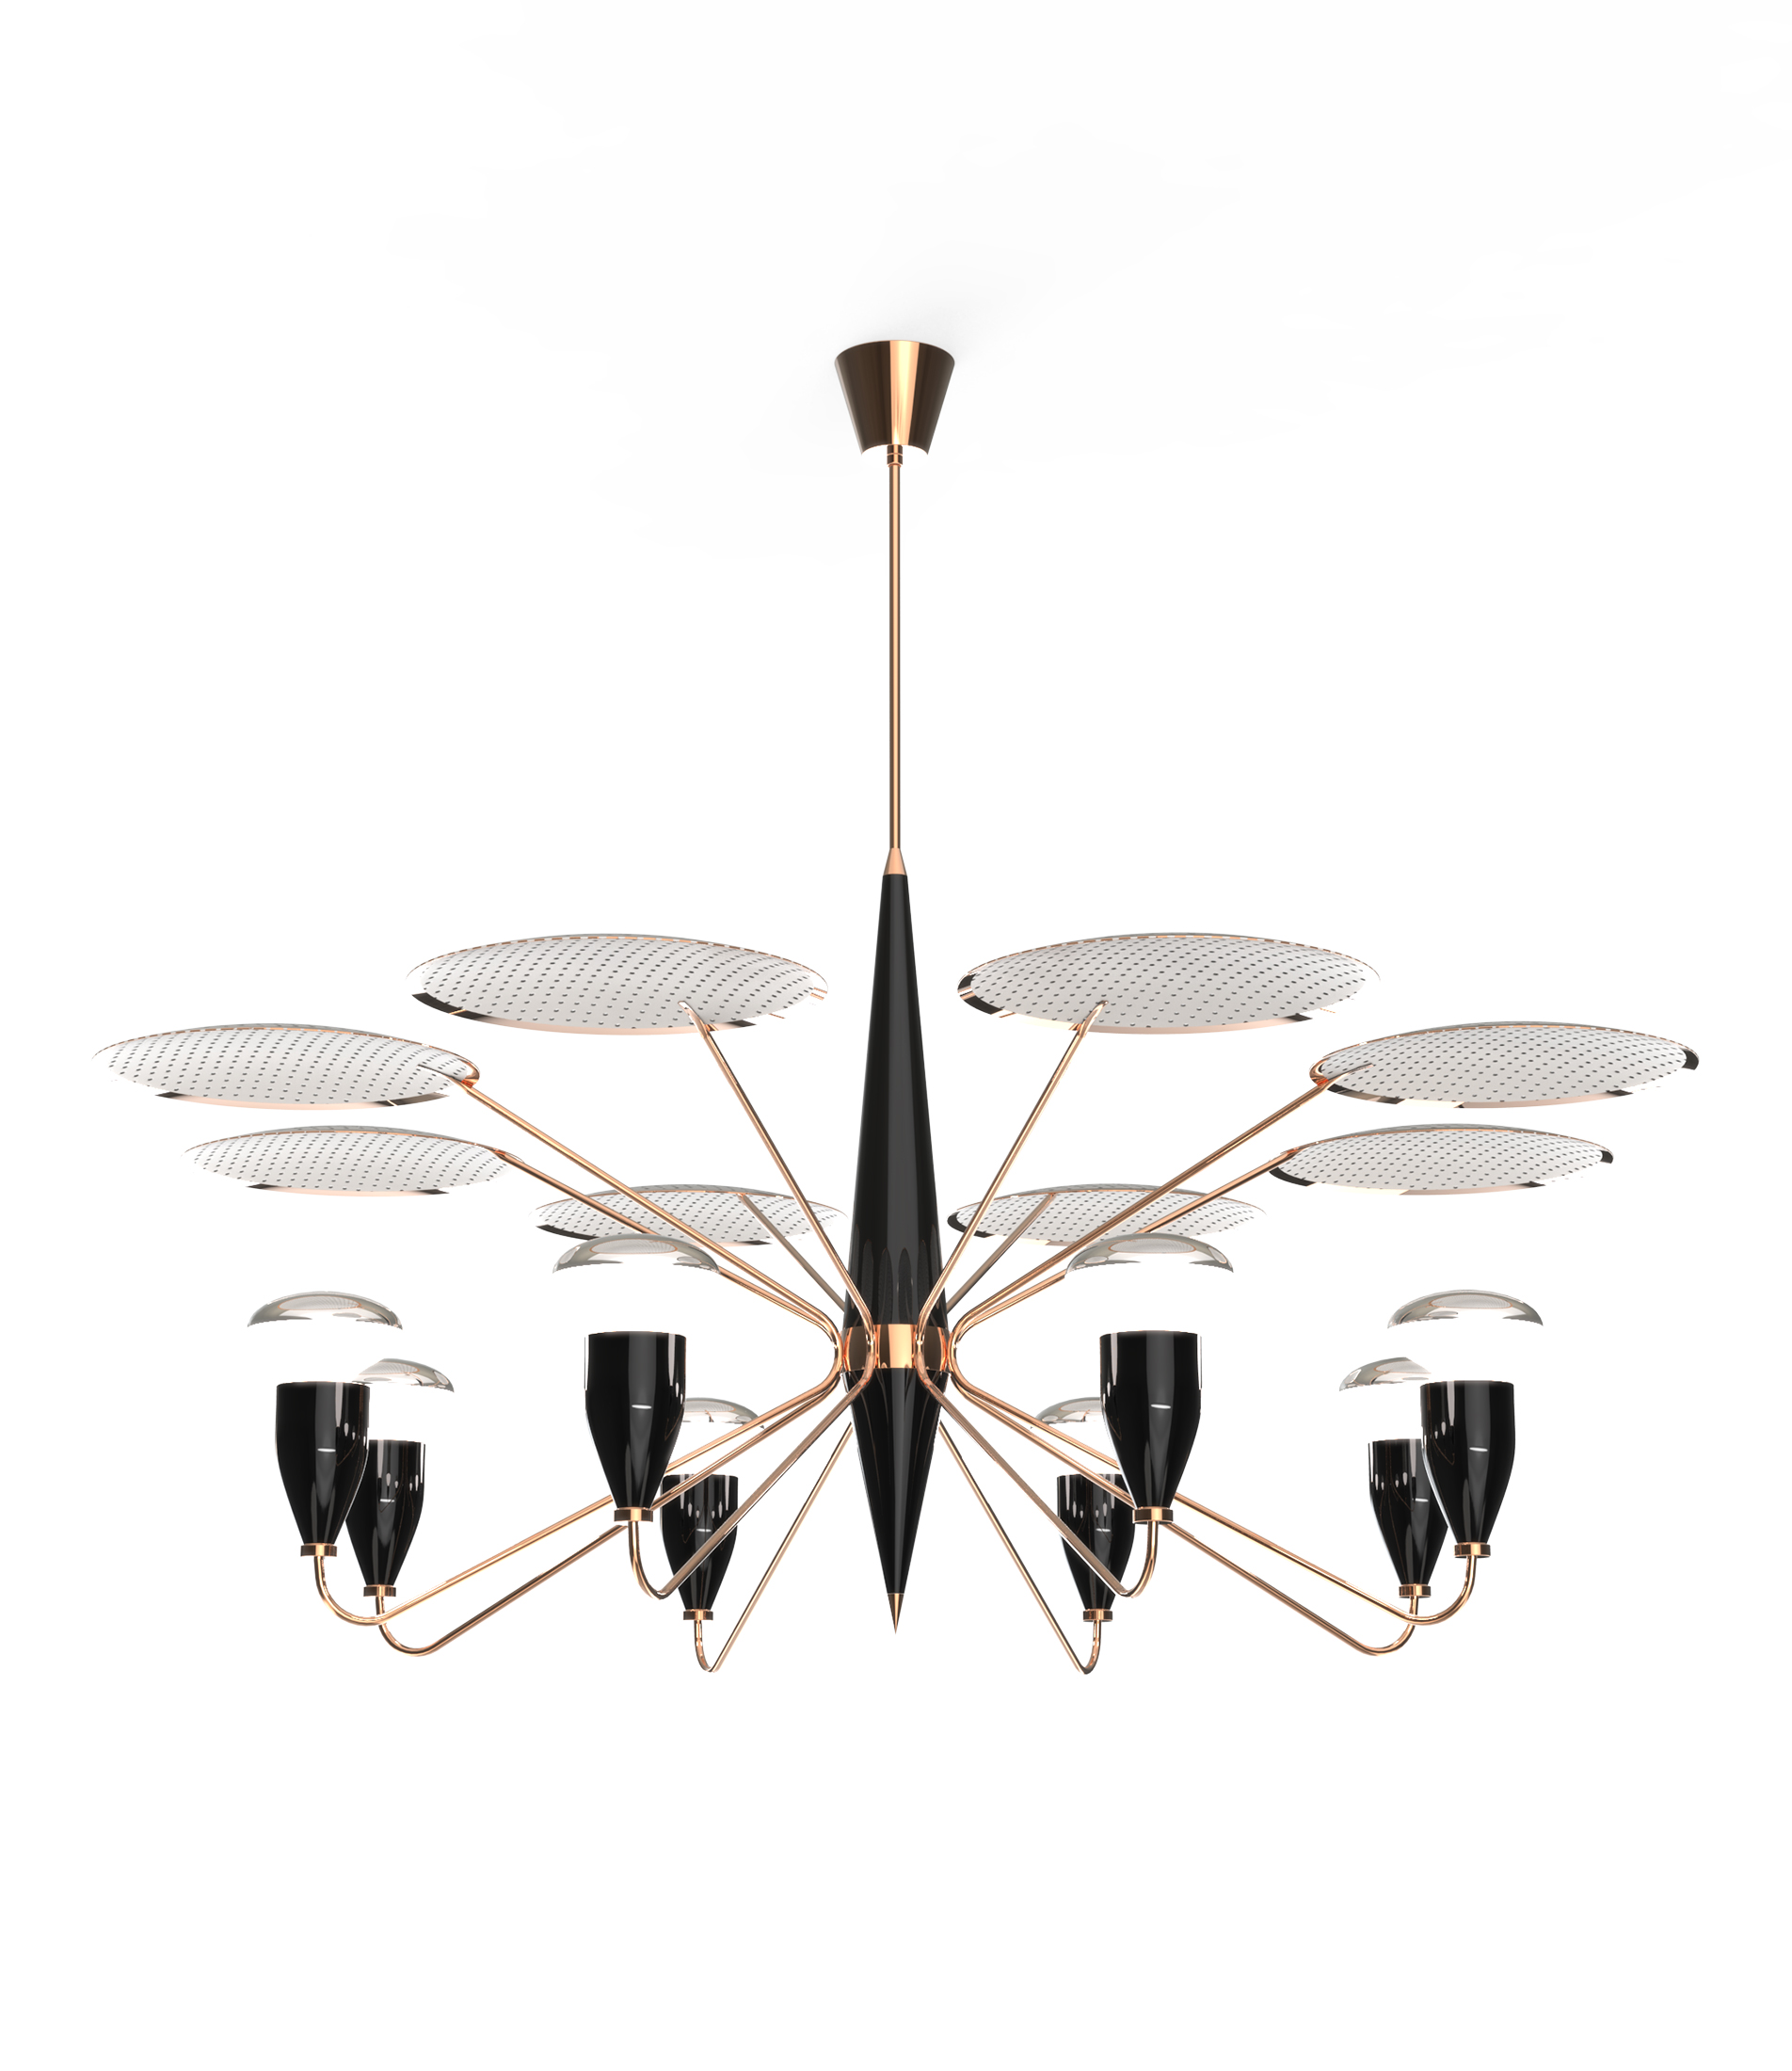 Let Space Invade Your Home With This Retro Lighting Designs 3 retro lighting designs Let Space Invade Your Home With This Retro Lighting Designs Let Space Invade Your Home With This Retro Lighting Designs 3